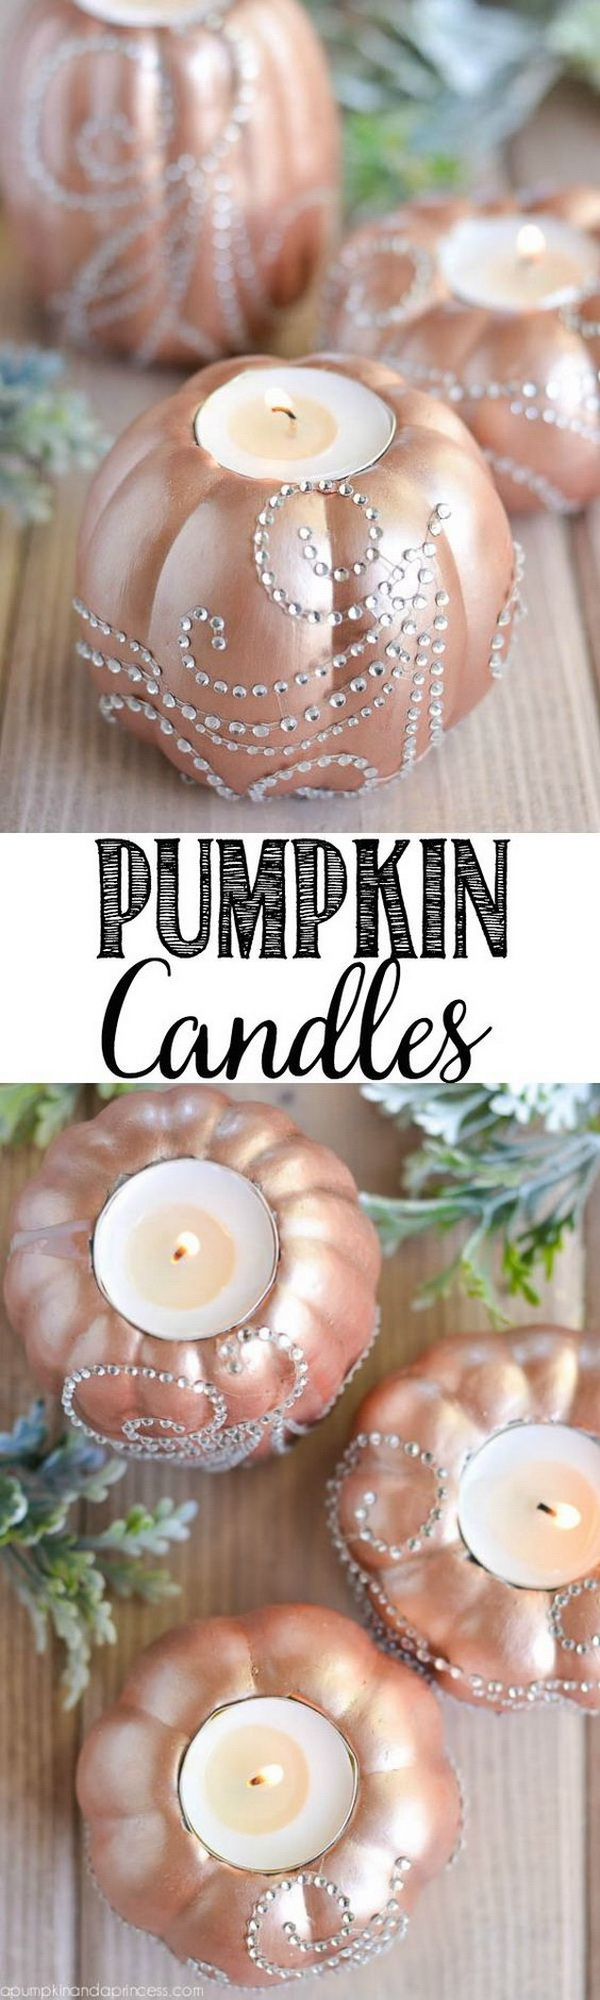 DIY Pumpkin Candles.